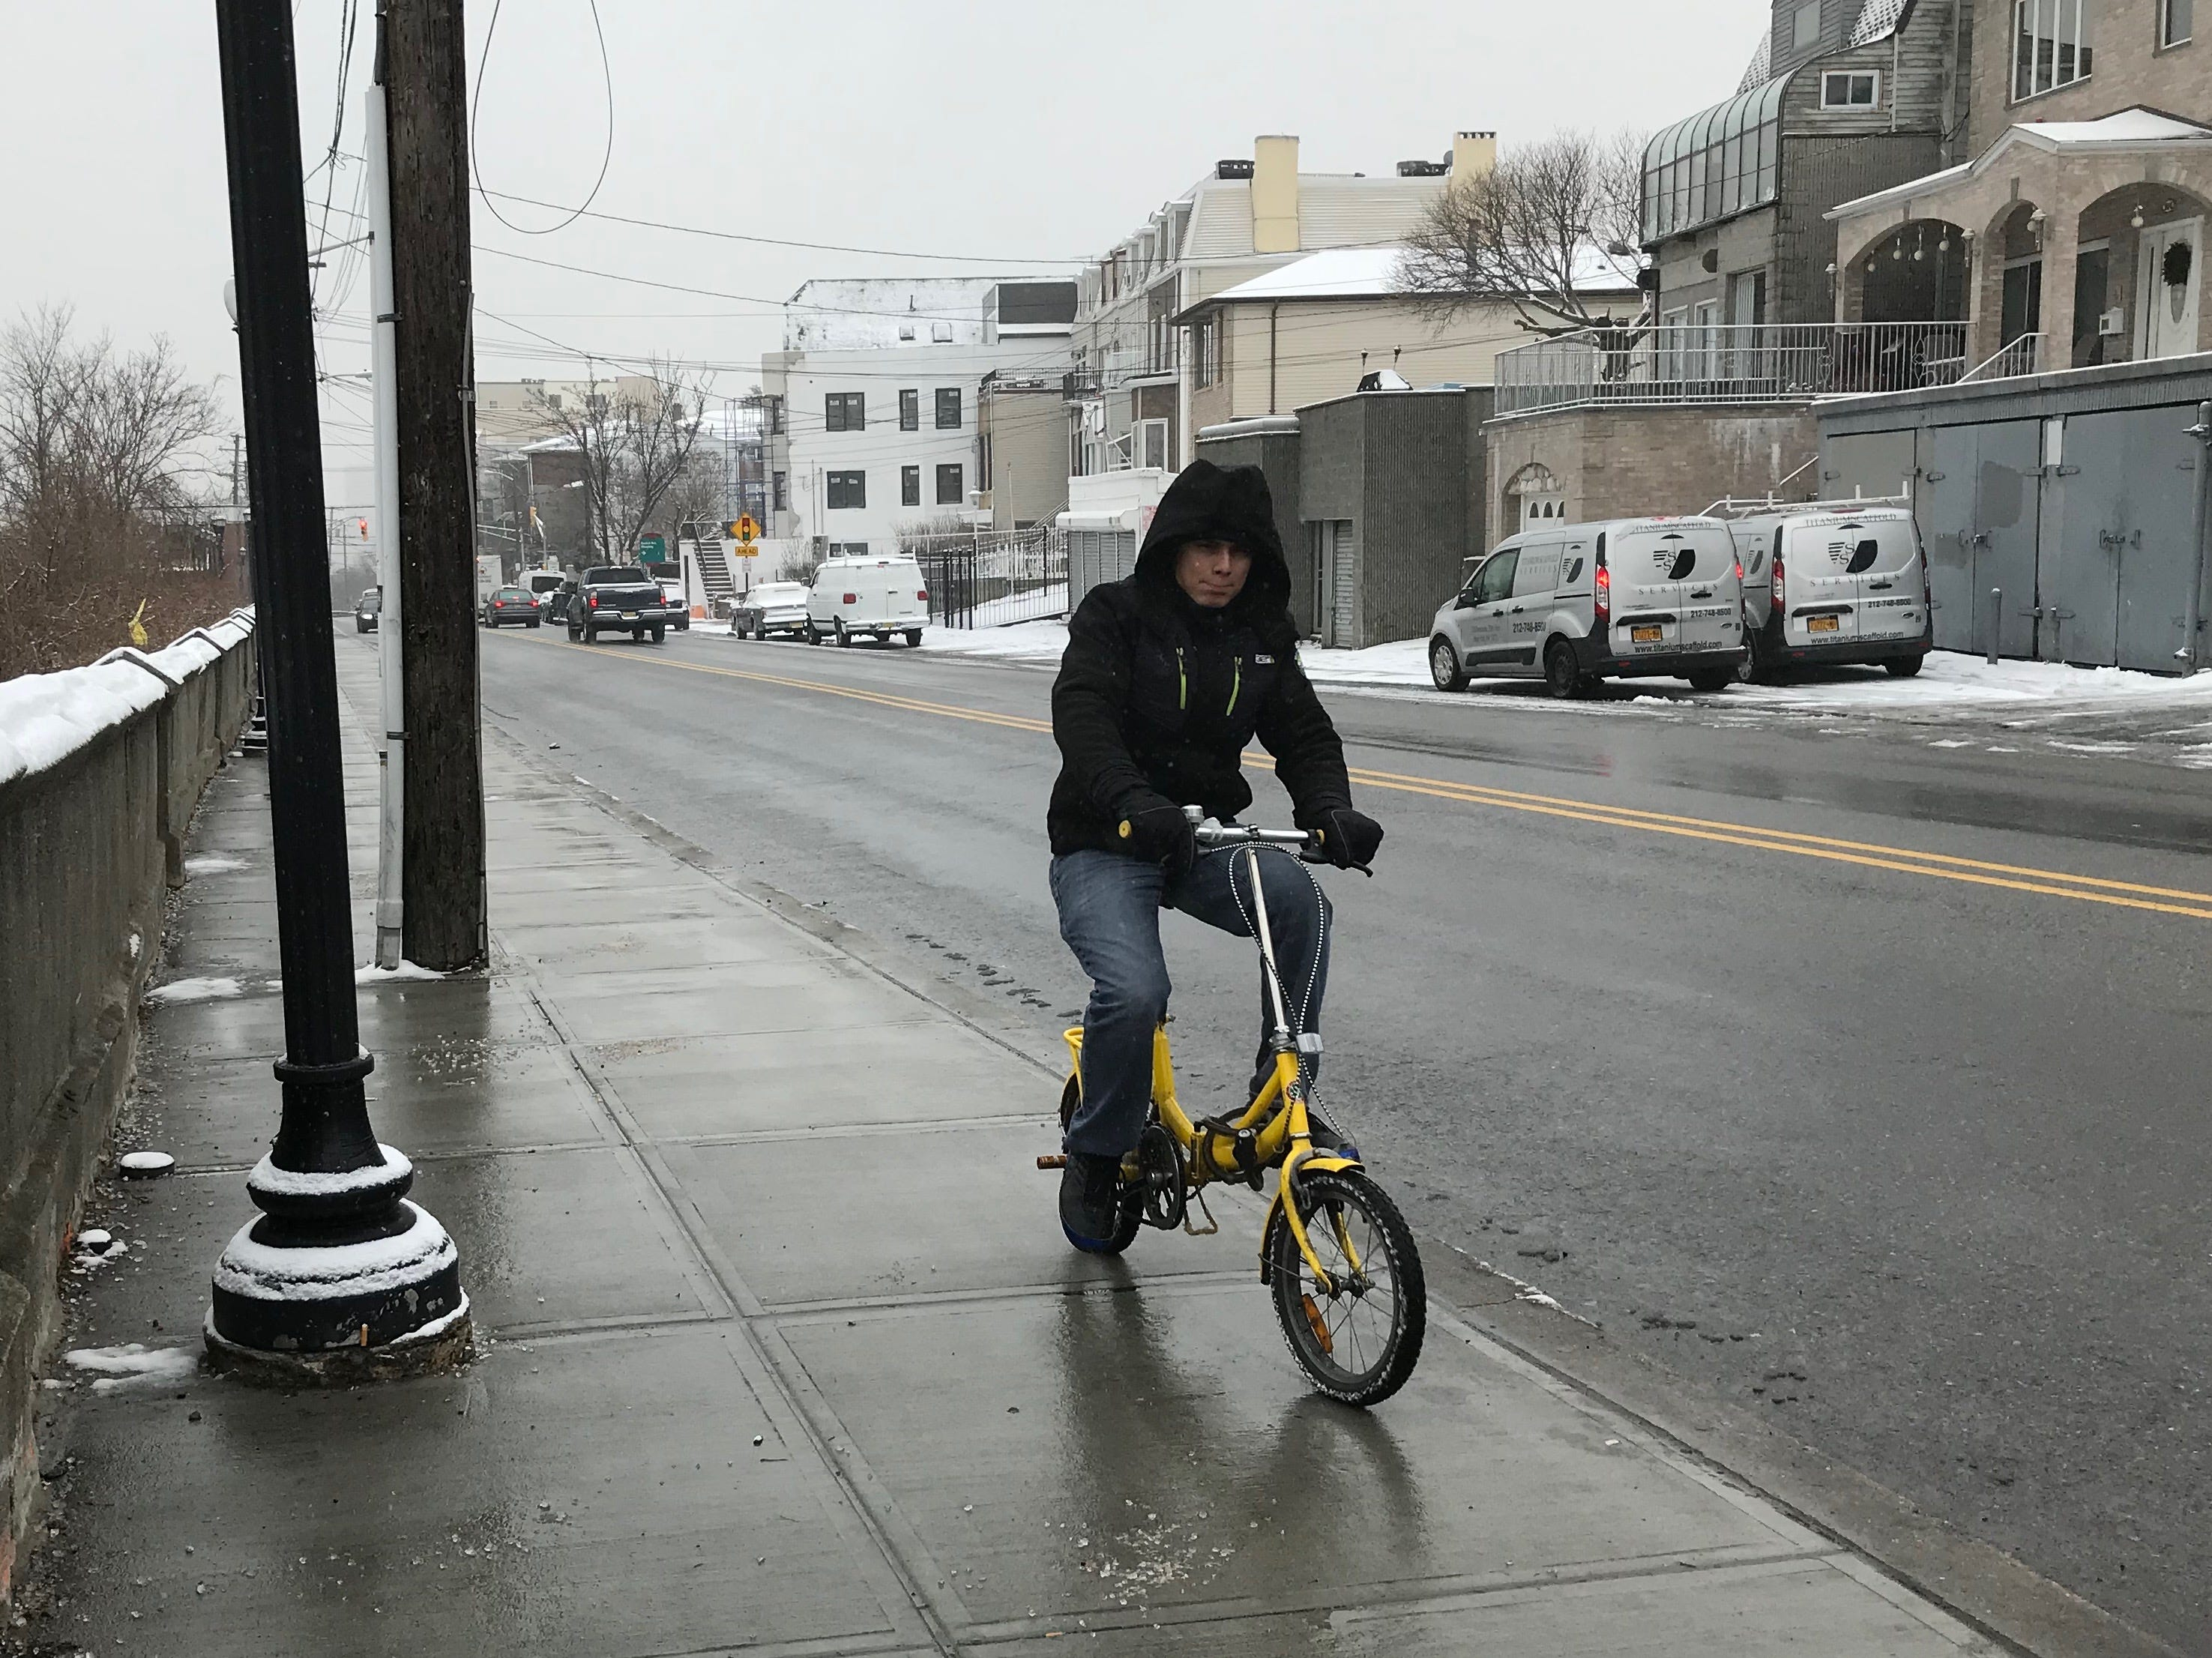 By 2 p.m. snow was falling steadily in Hudson County but not sticking to treated sidewalks and streets. It allowed this bike rider to traverse Jersey City with ease.